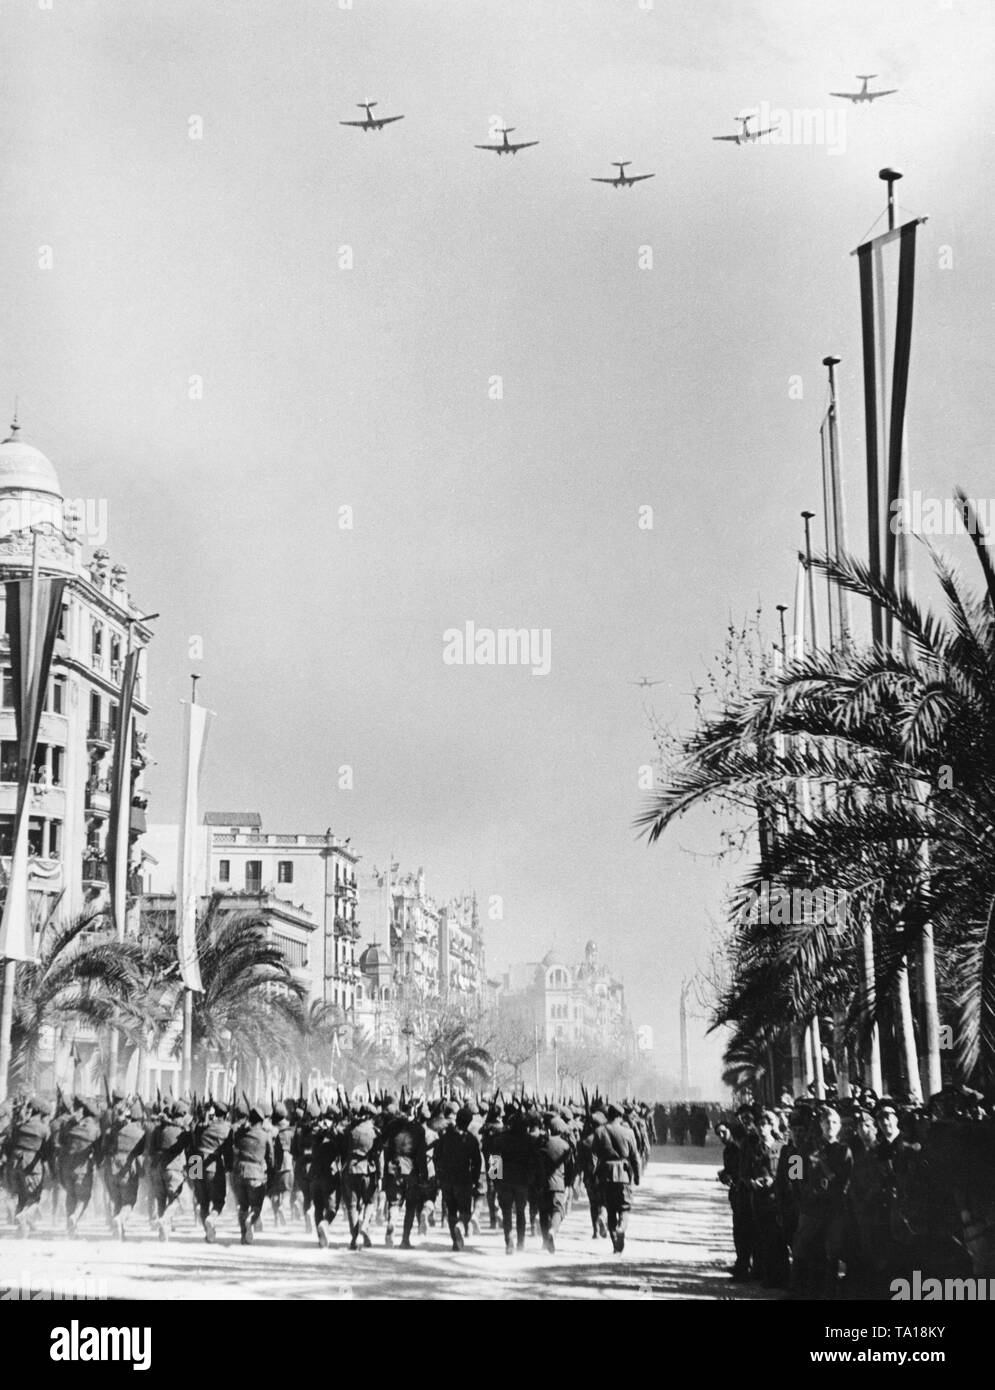 Photoof a victory parade of Spanish nationalunits on Passeig de Colon after the conquest (January 1939) of Barcelona by General Francisco Franco in February, 1939. In the foreground, marching infantry units. In the sky, formation flight of the German Condor Legion. - Stock Image